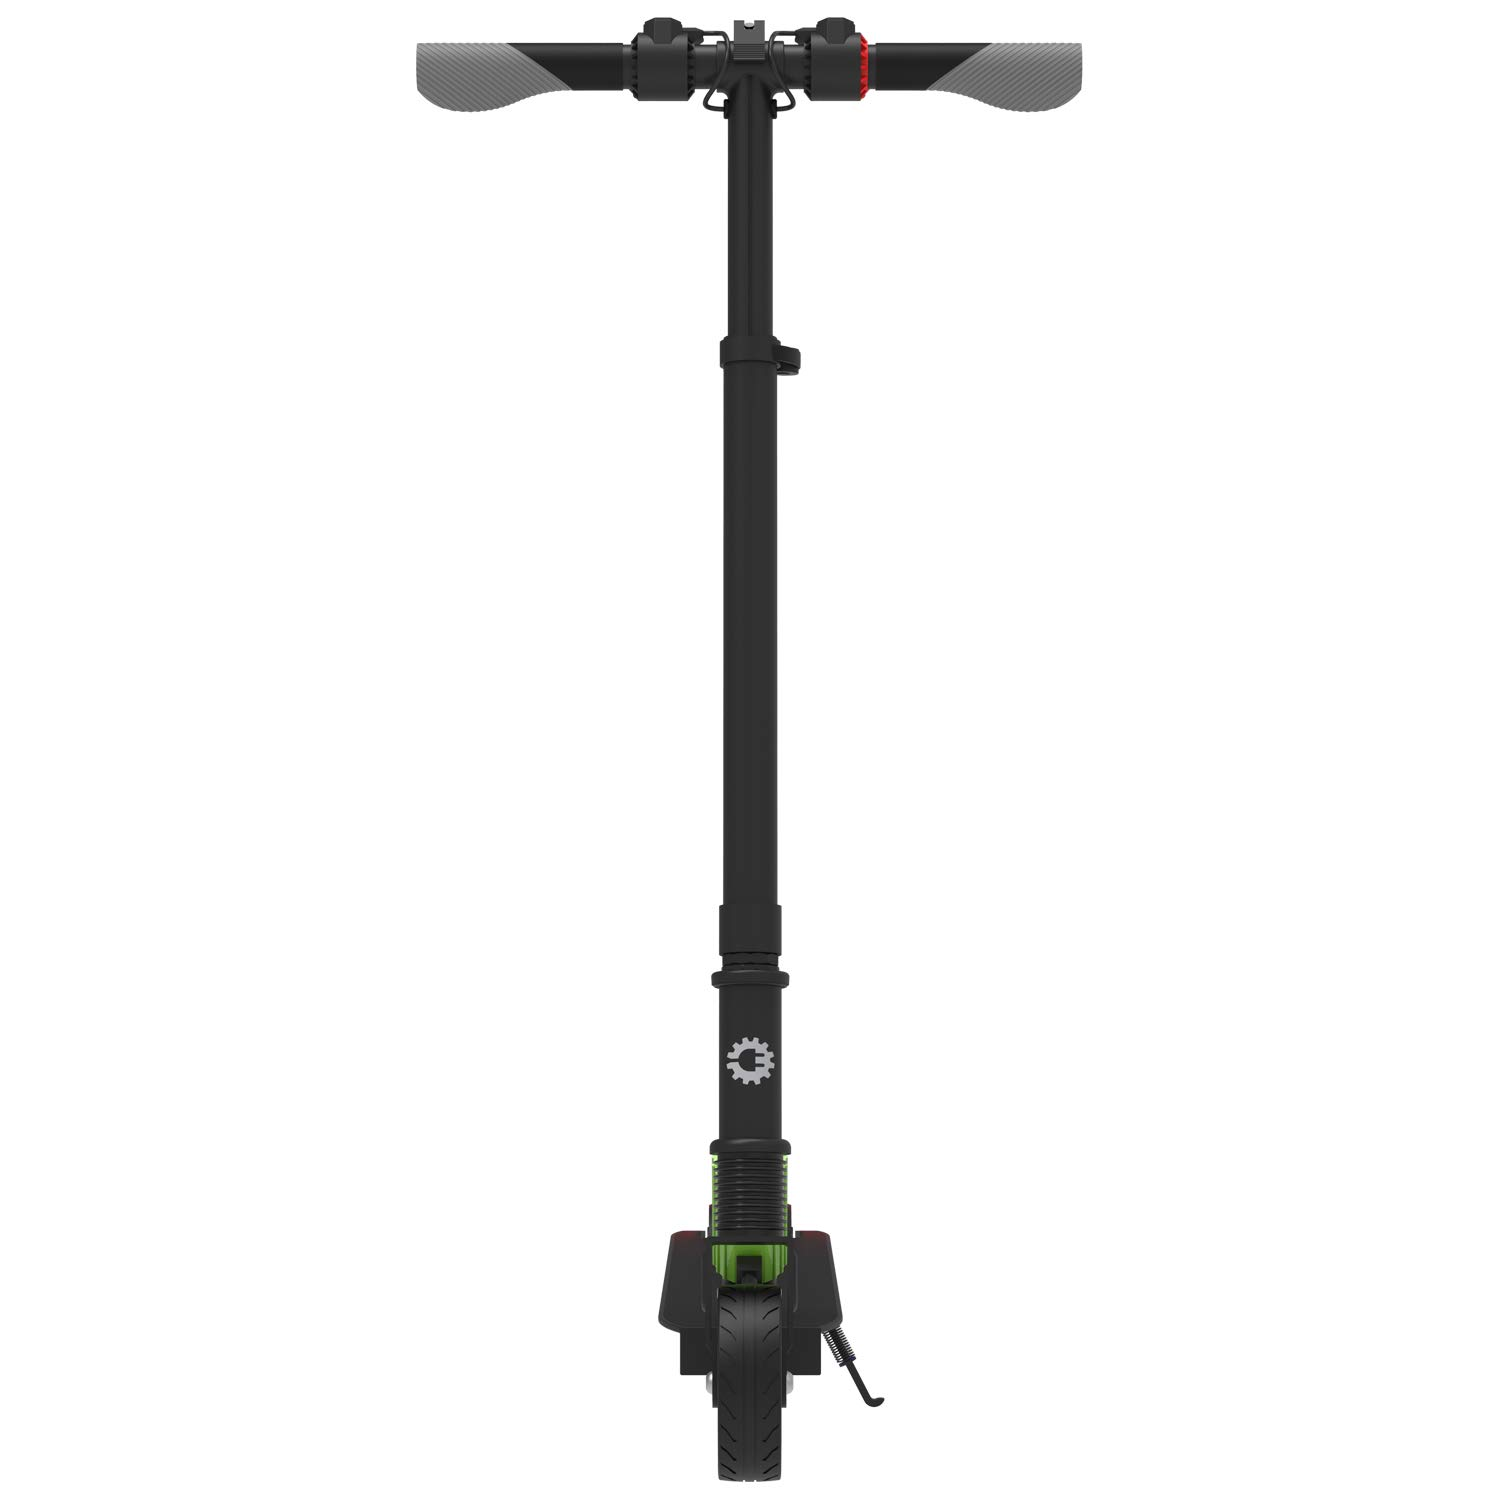 Amazon.com: Jetson crucero Kick Scooter eléctrica plegable ...